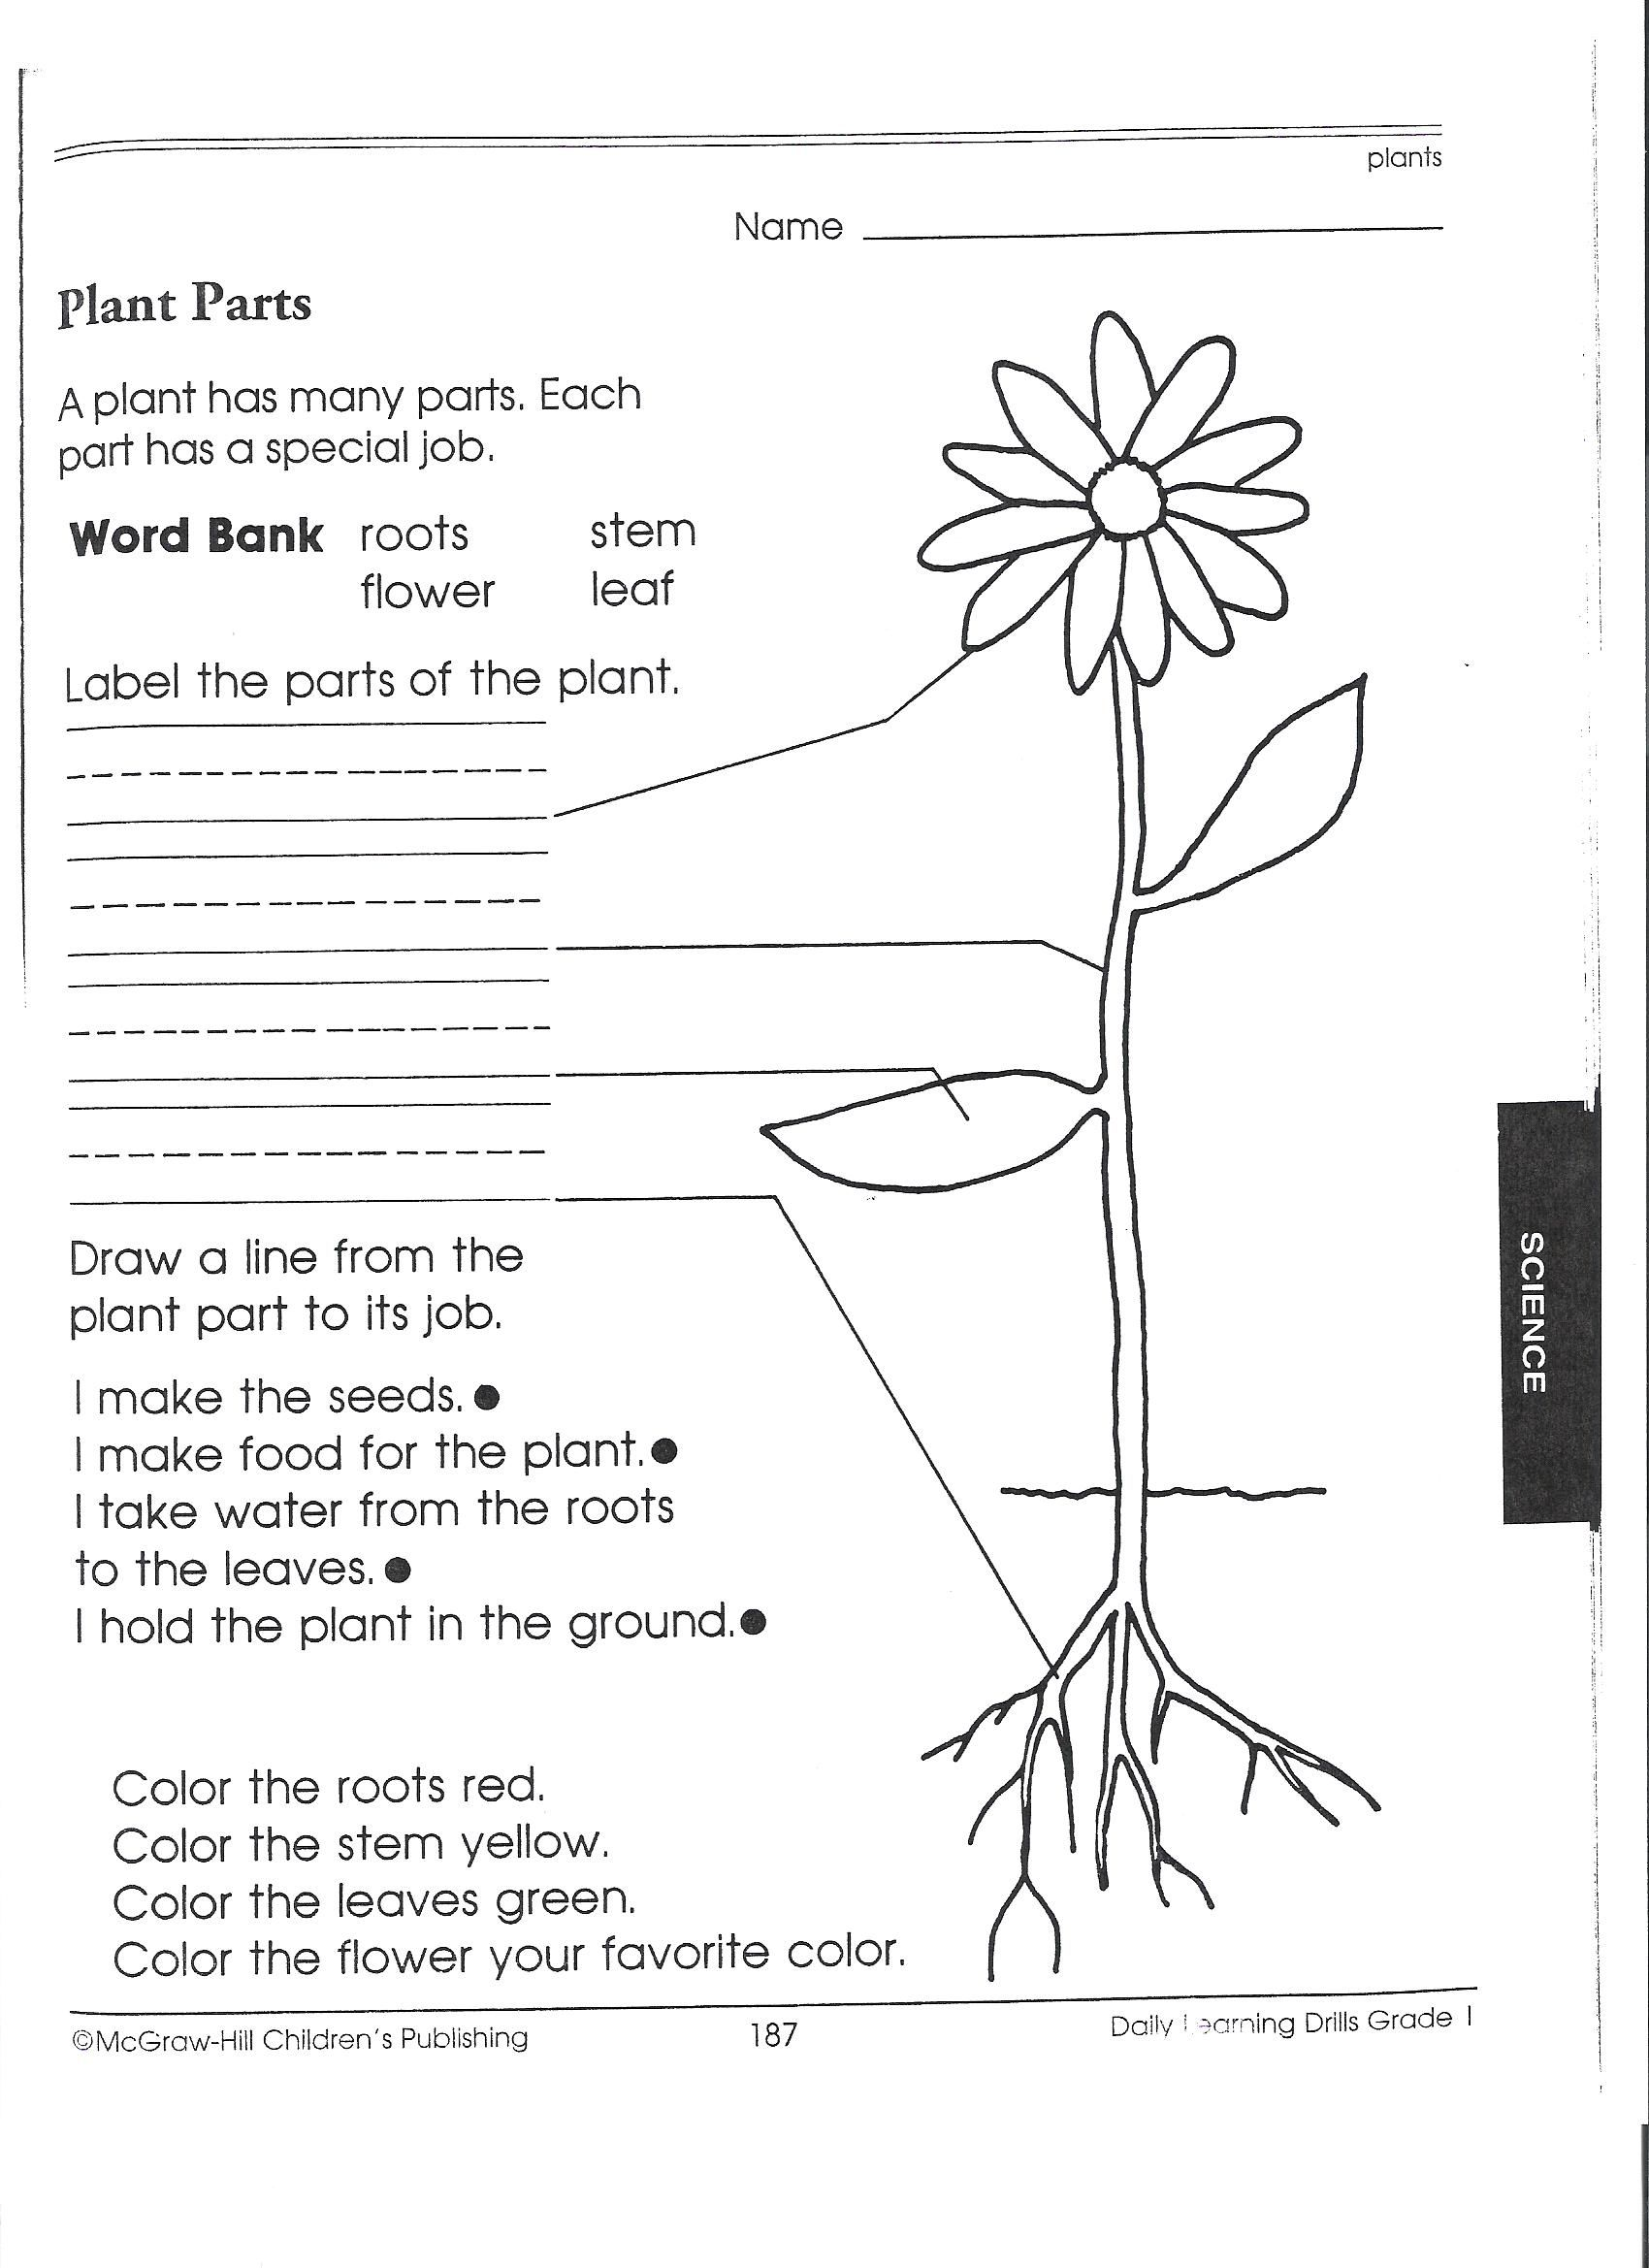 worksheets structure of a plant Science Classroom – Plant Worksheet